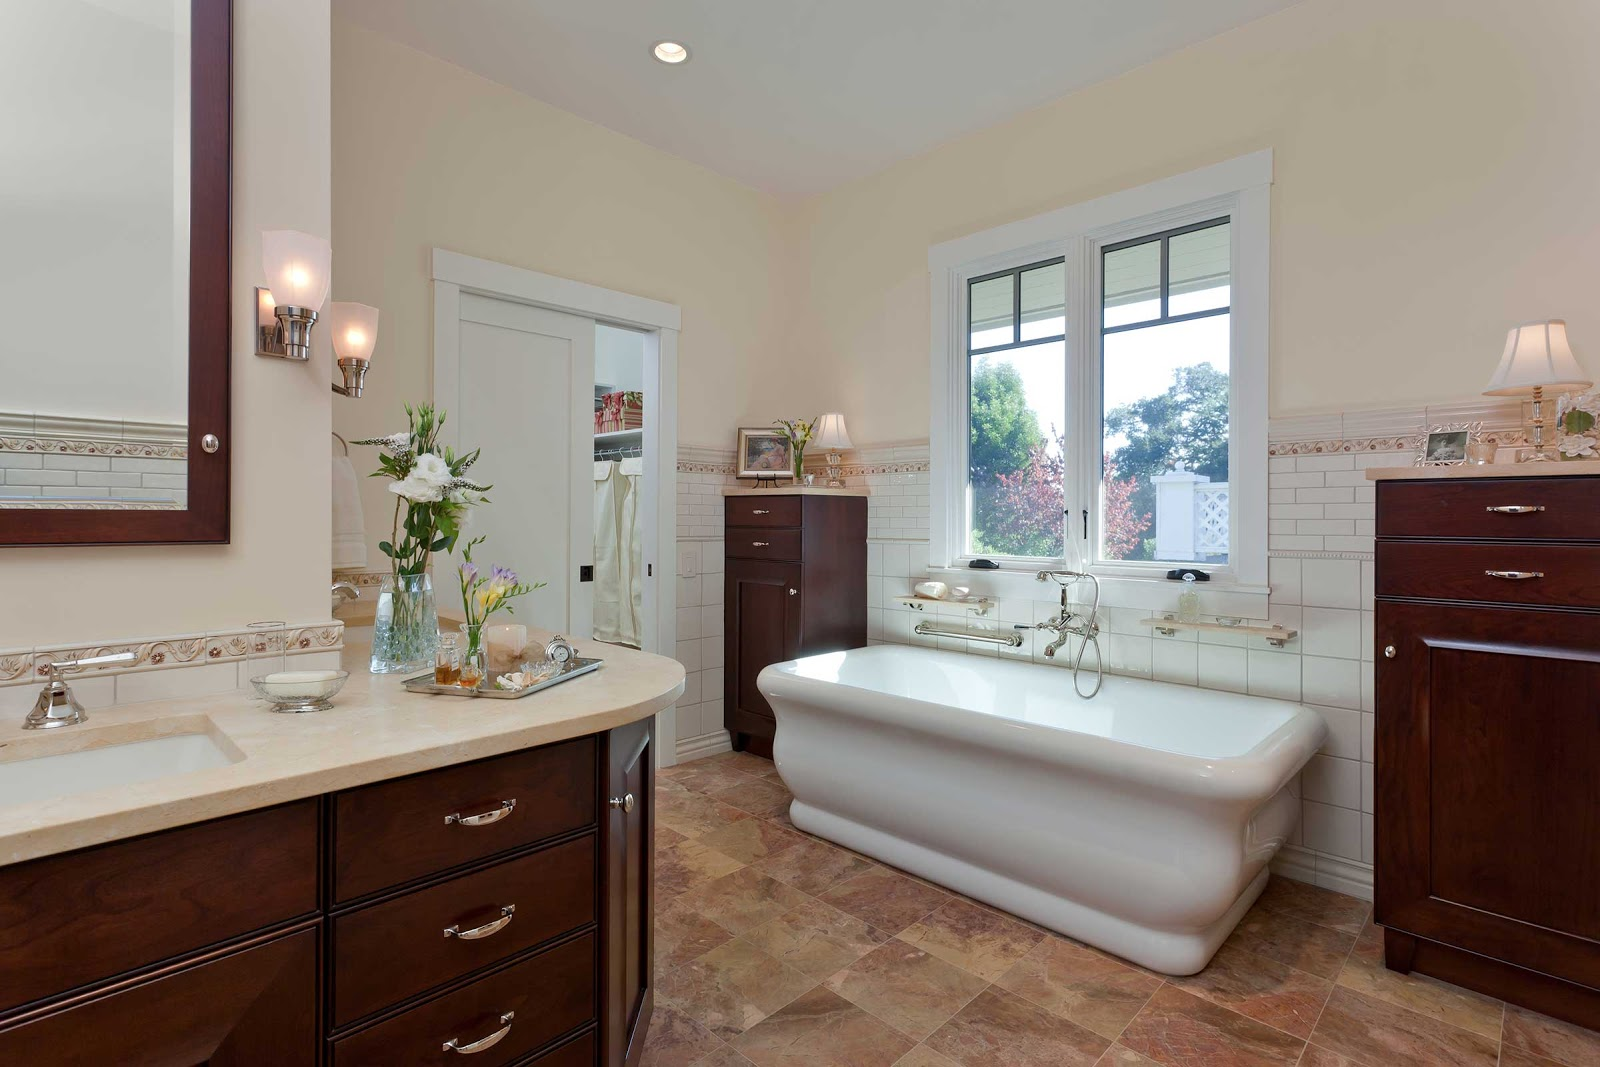 Luxury Bathroom Remodels in the East Bay - Custom Dark Cherry Cabinetry - Master Bathroom - Custom Kitchens